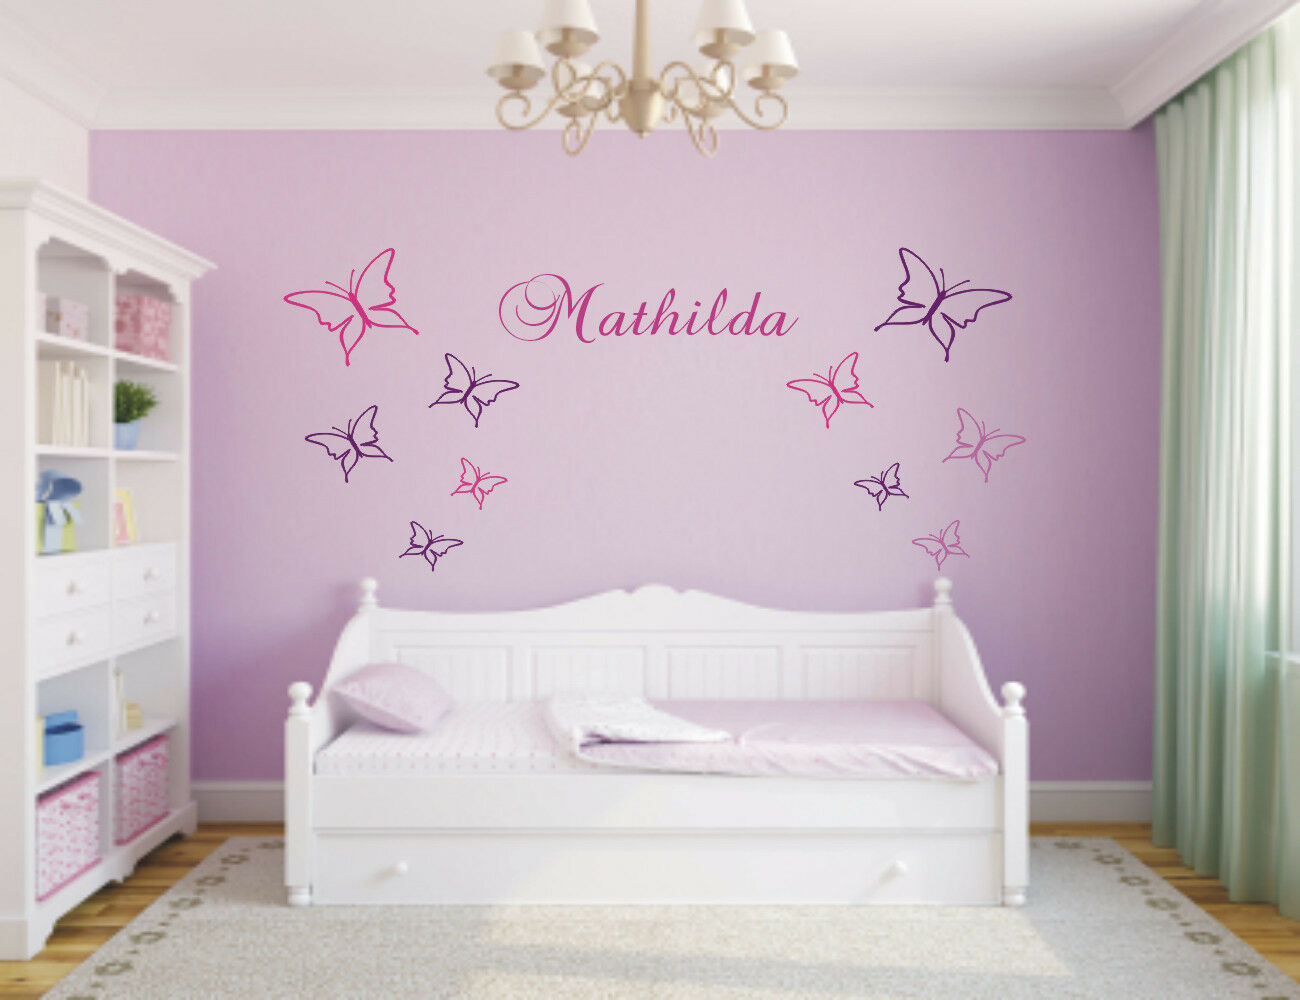 wandtattoo 10 schmetterlinge mit namen wunschnamen kinderzimmer 2 farbig. Black Bedroom Furniture Sets. Home Design Ideas